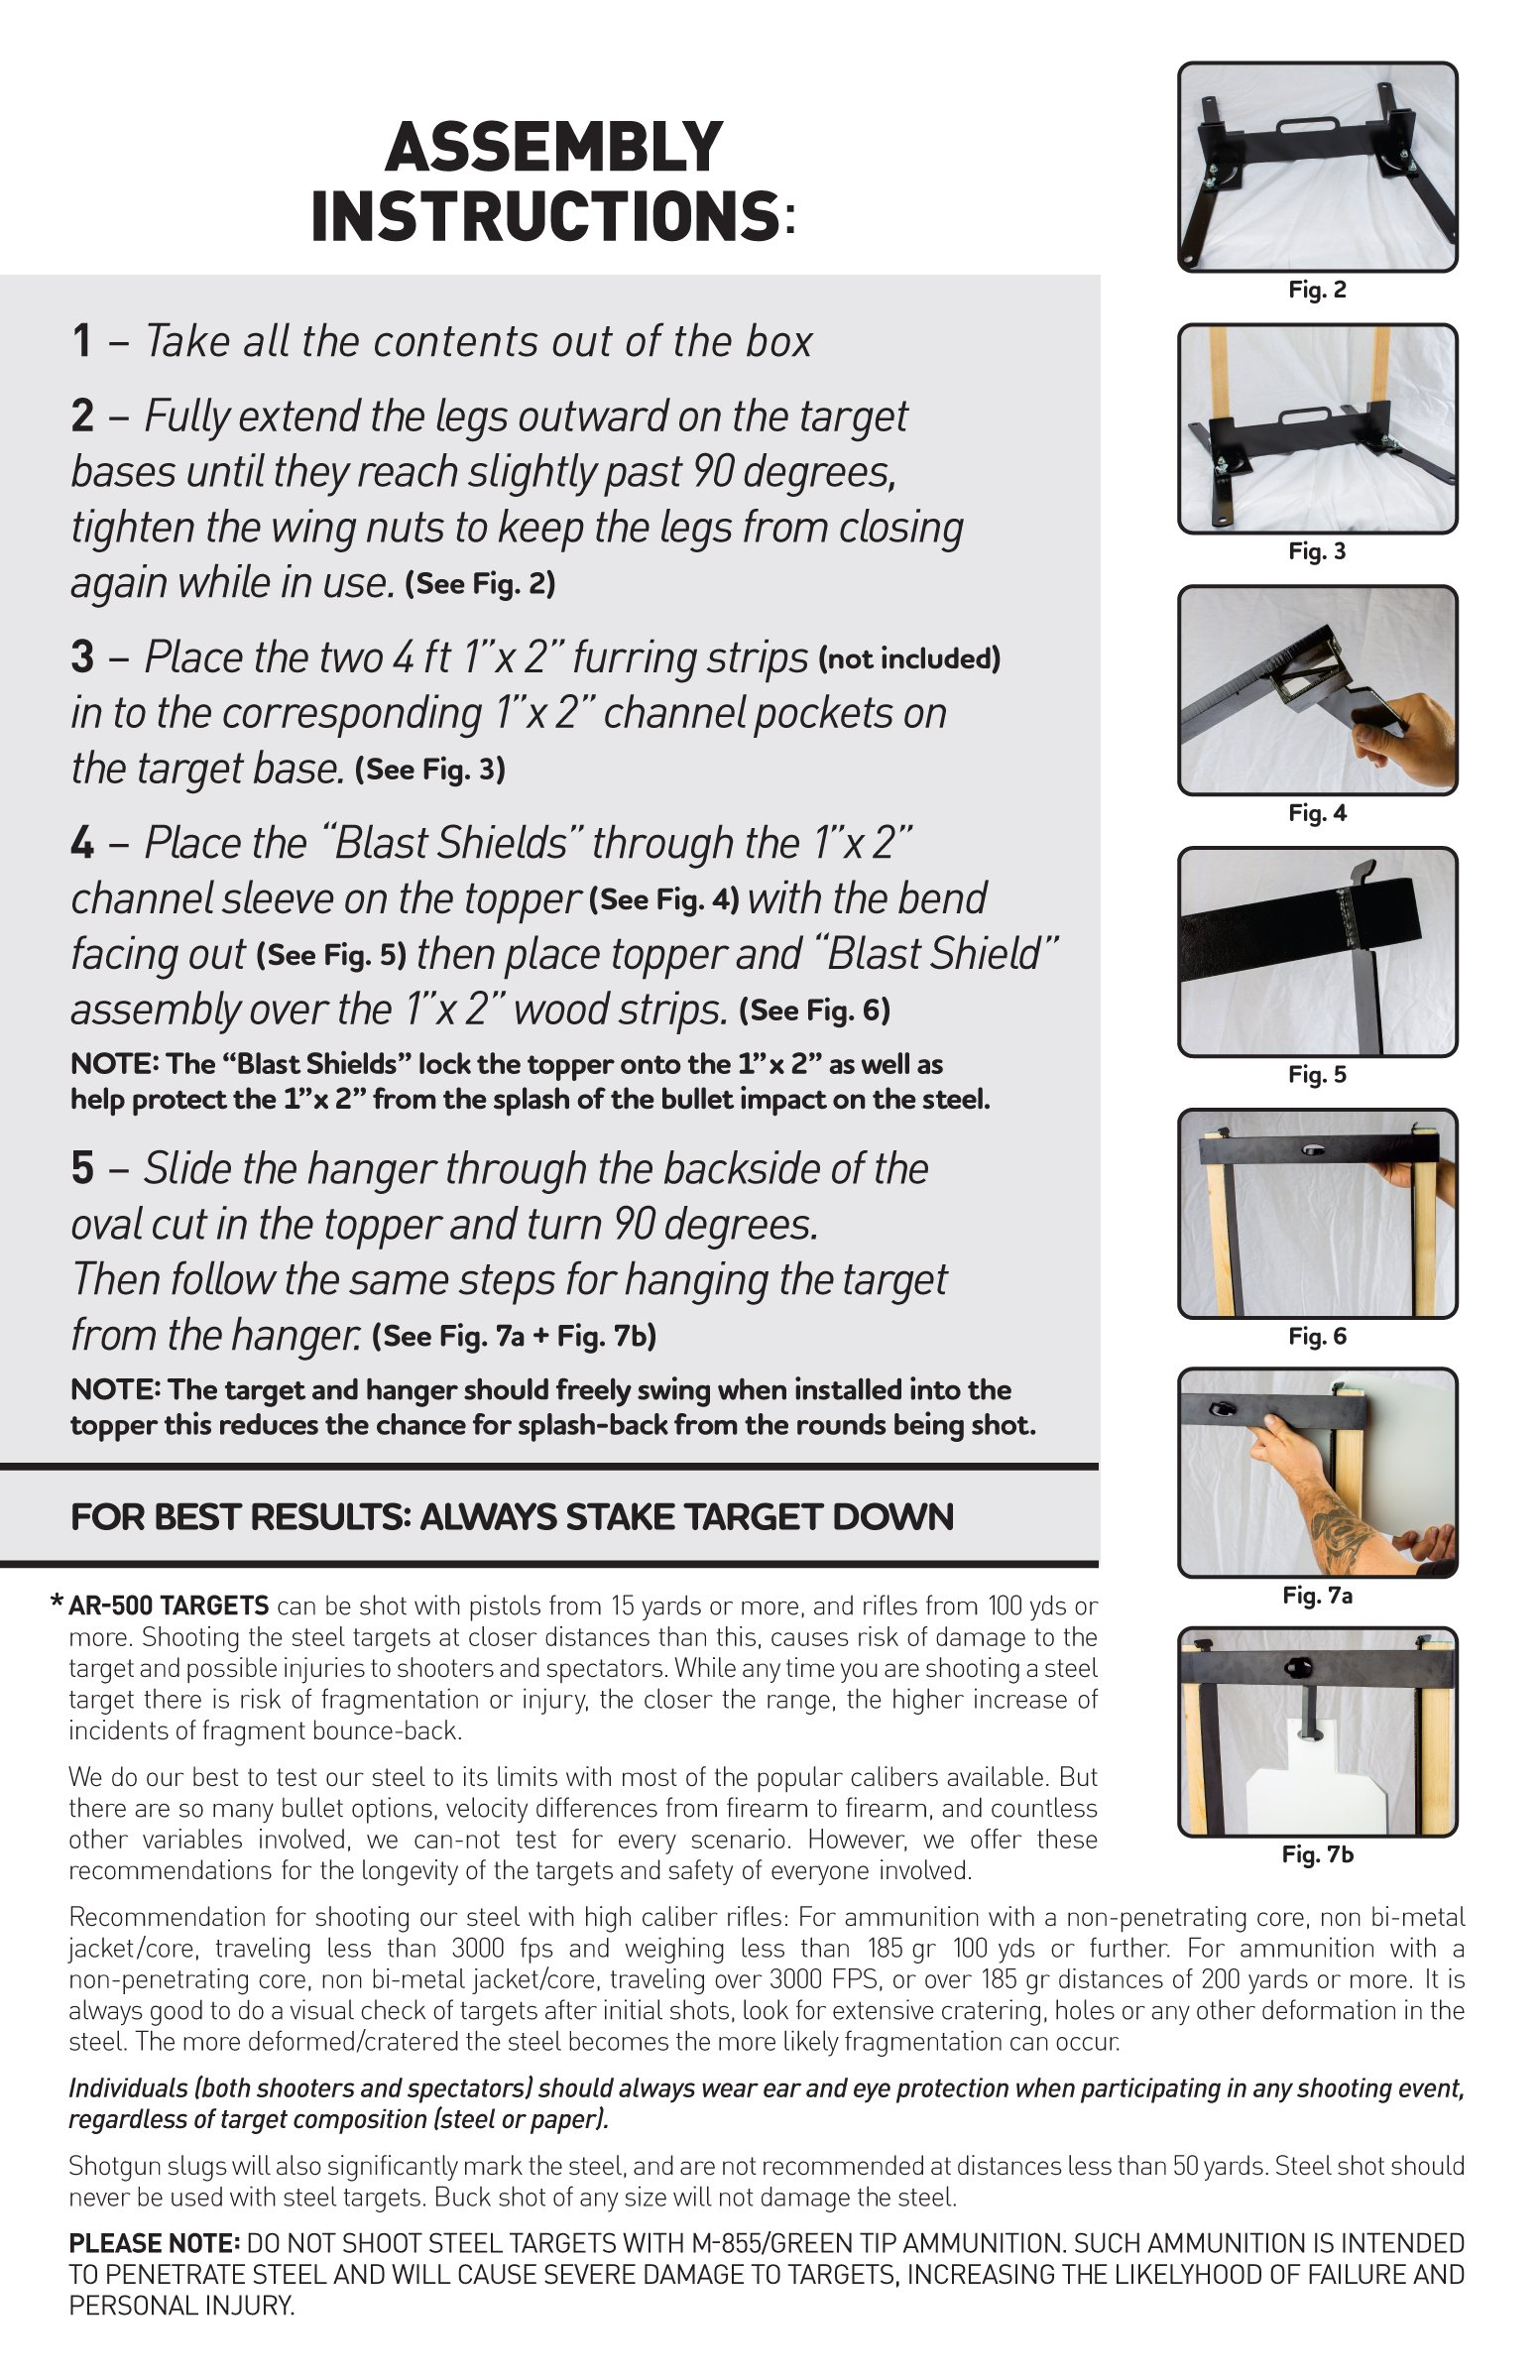 MPATS Portable and Compact AR500 Steel Target System